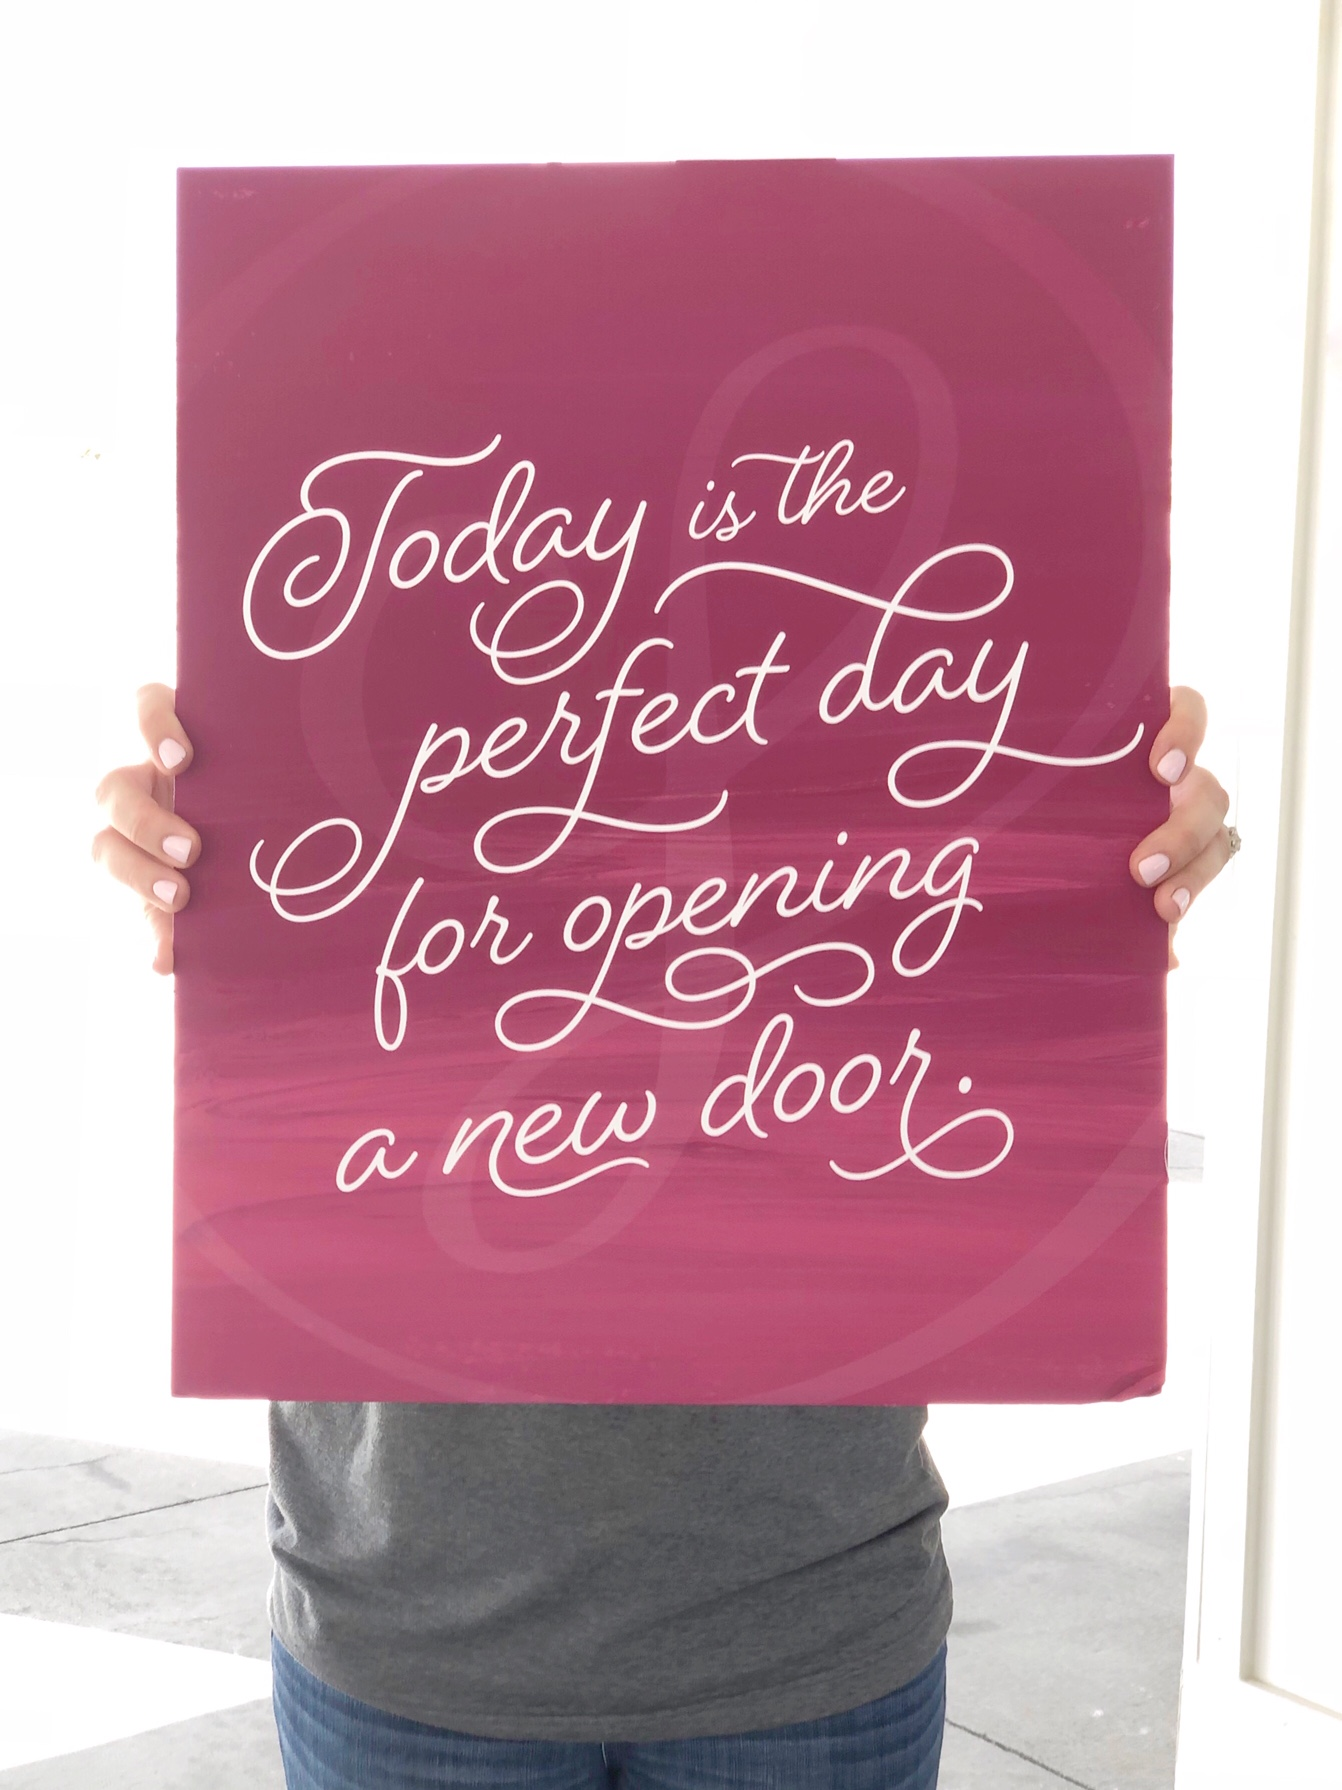 Today is the Perfect Day for Opening a New Door.